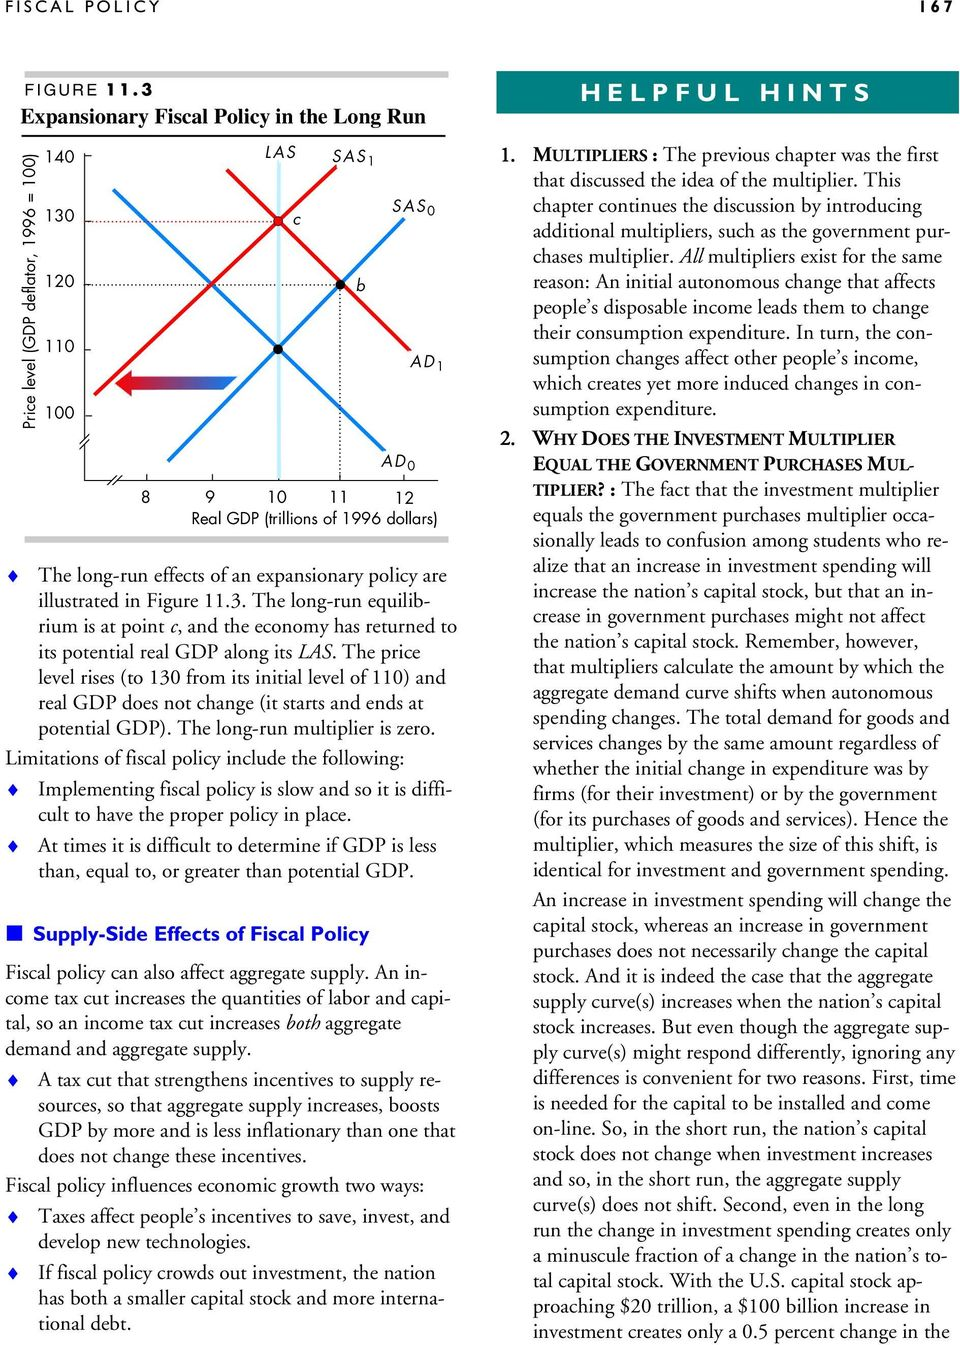 effects of an expansionary policy are illustrated in Figure 11.3. The long-run equilibrium is at point c, and the economy has returned to its potential real GDP along its LAS.